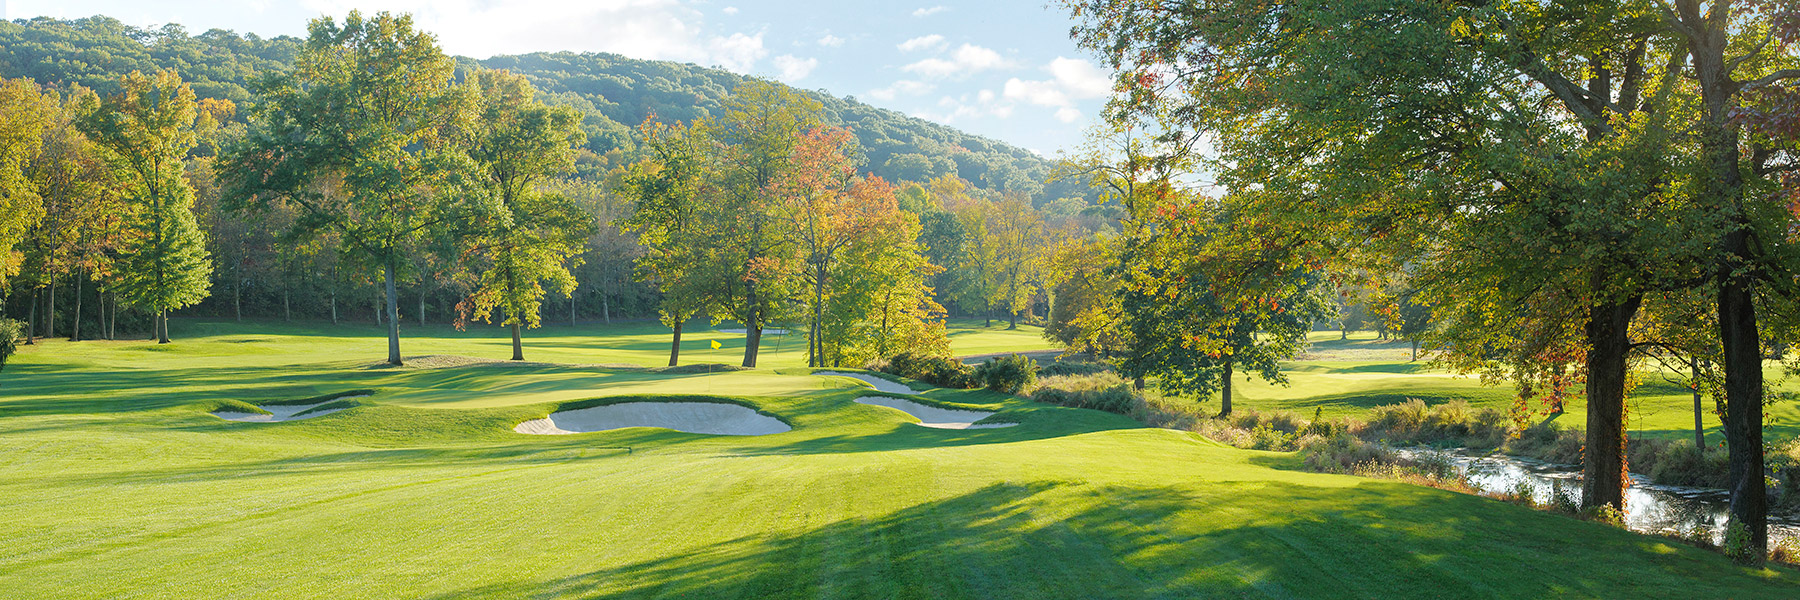 Golf Course Image - Saucon Valley Weyhill No. 5